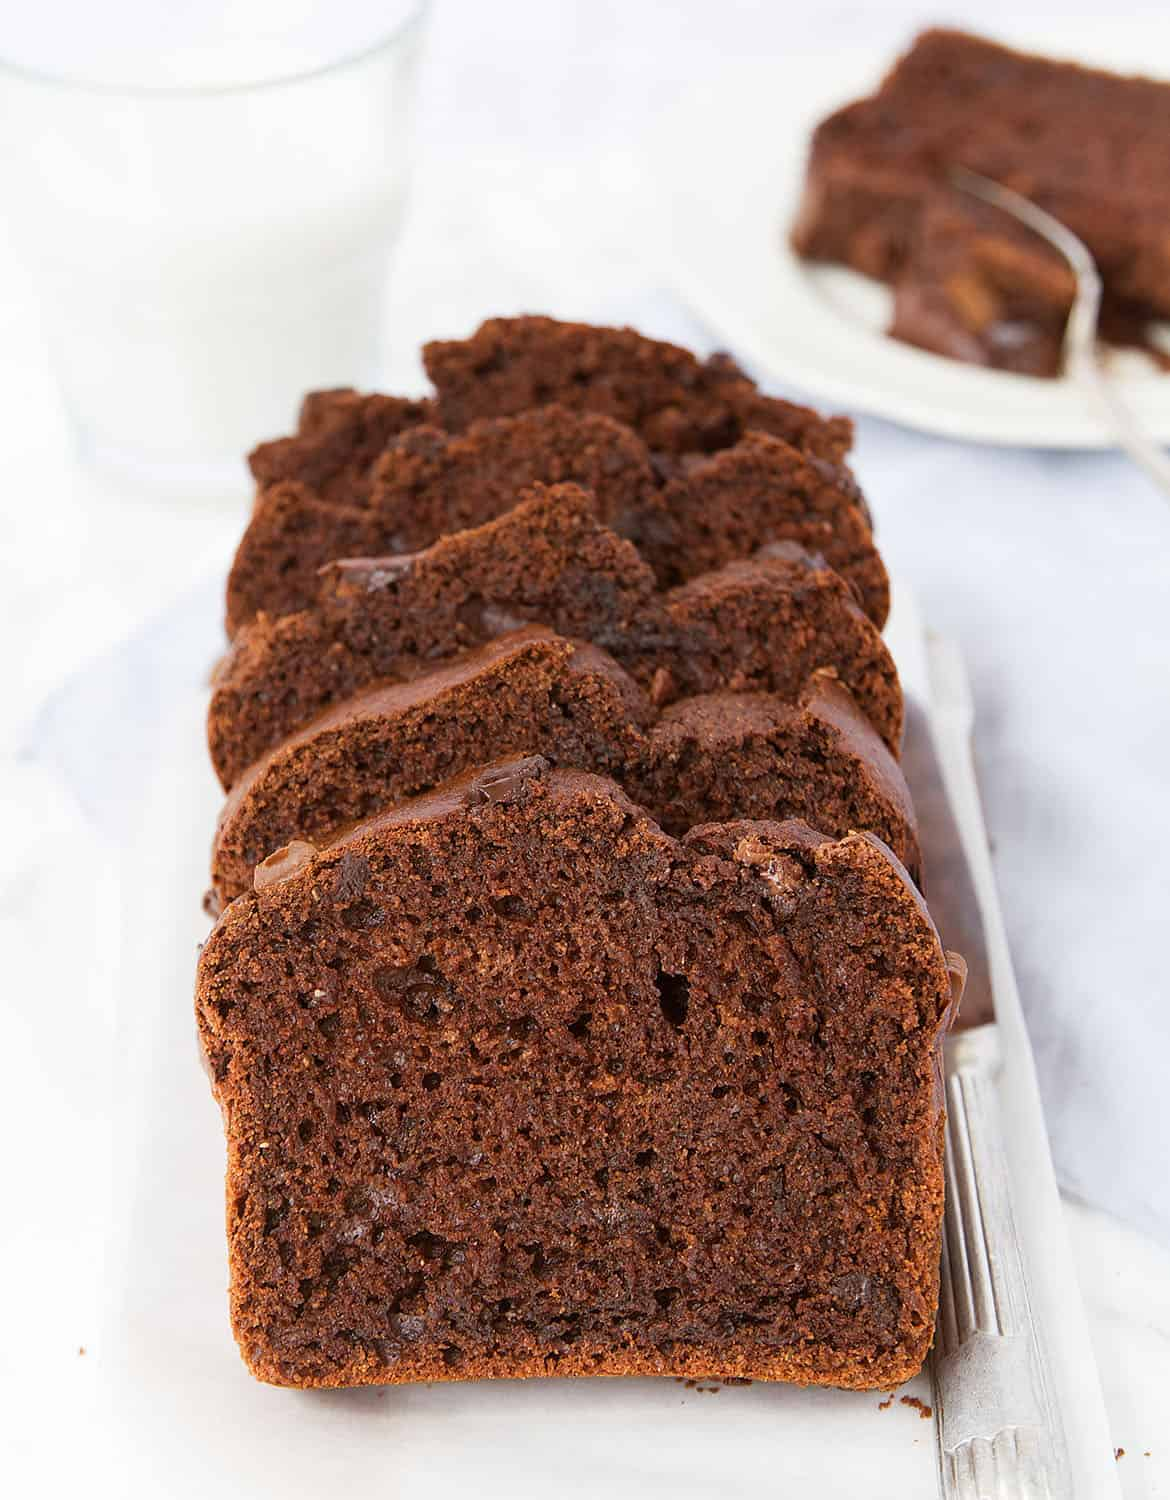 Five slices of healthy chocolate zucchini bread on a white tray - The Clever Meal